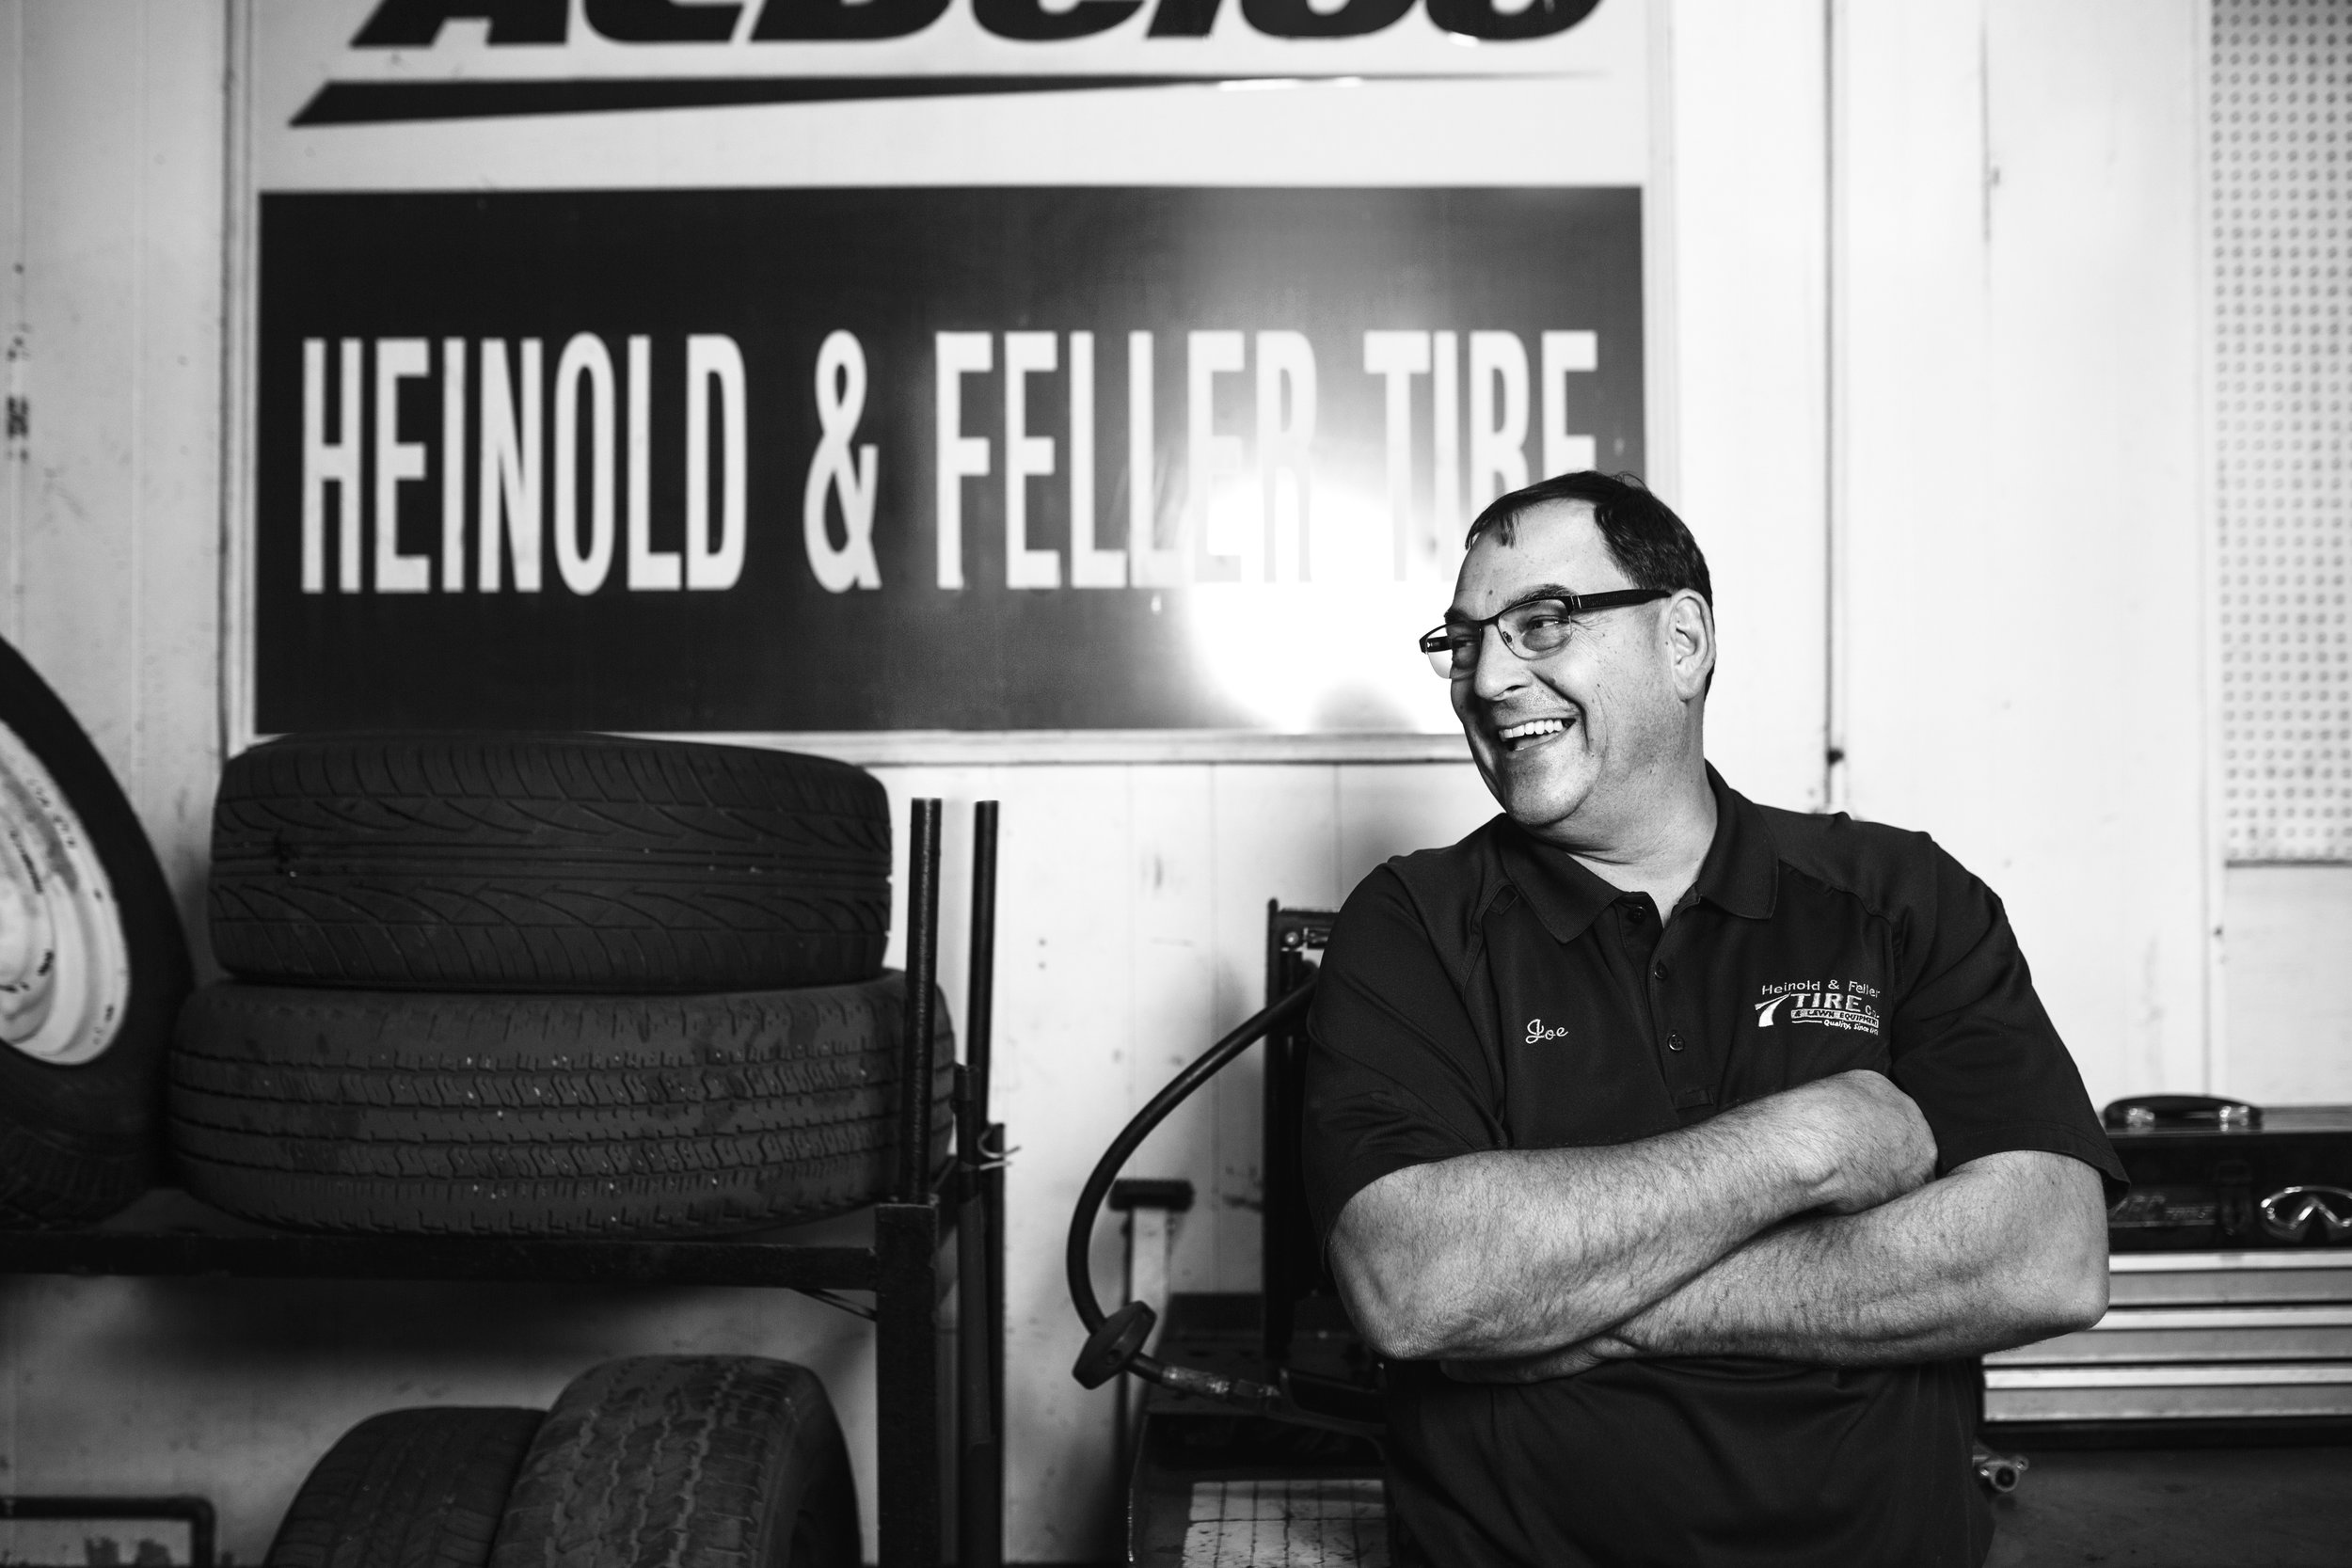 HEINOLD & FELLER - Thank you for the peace of mind that my business is taken care of.